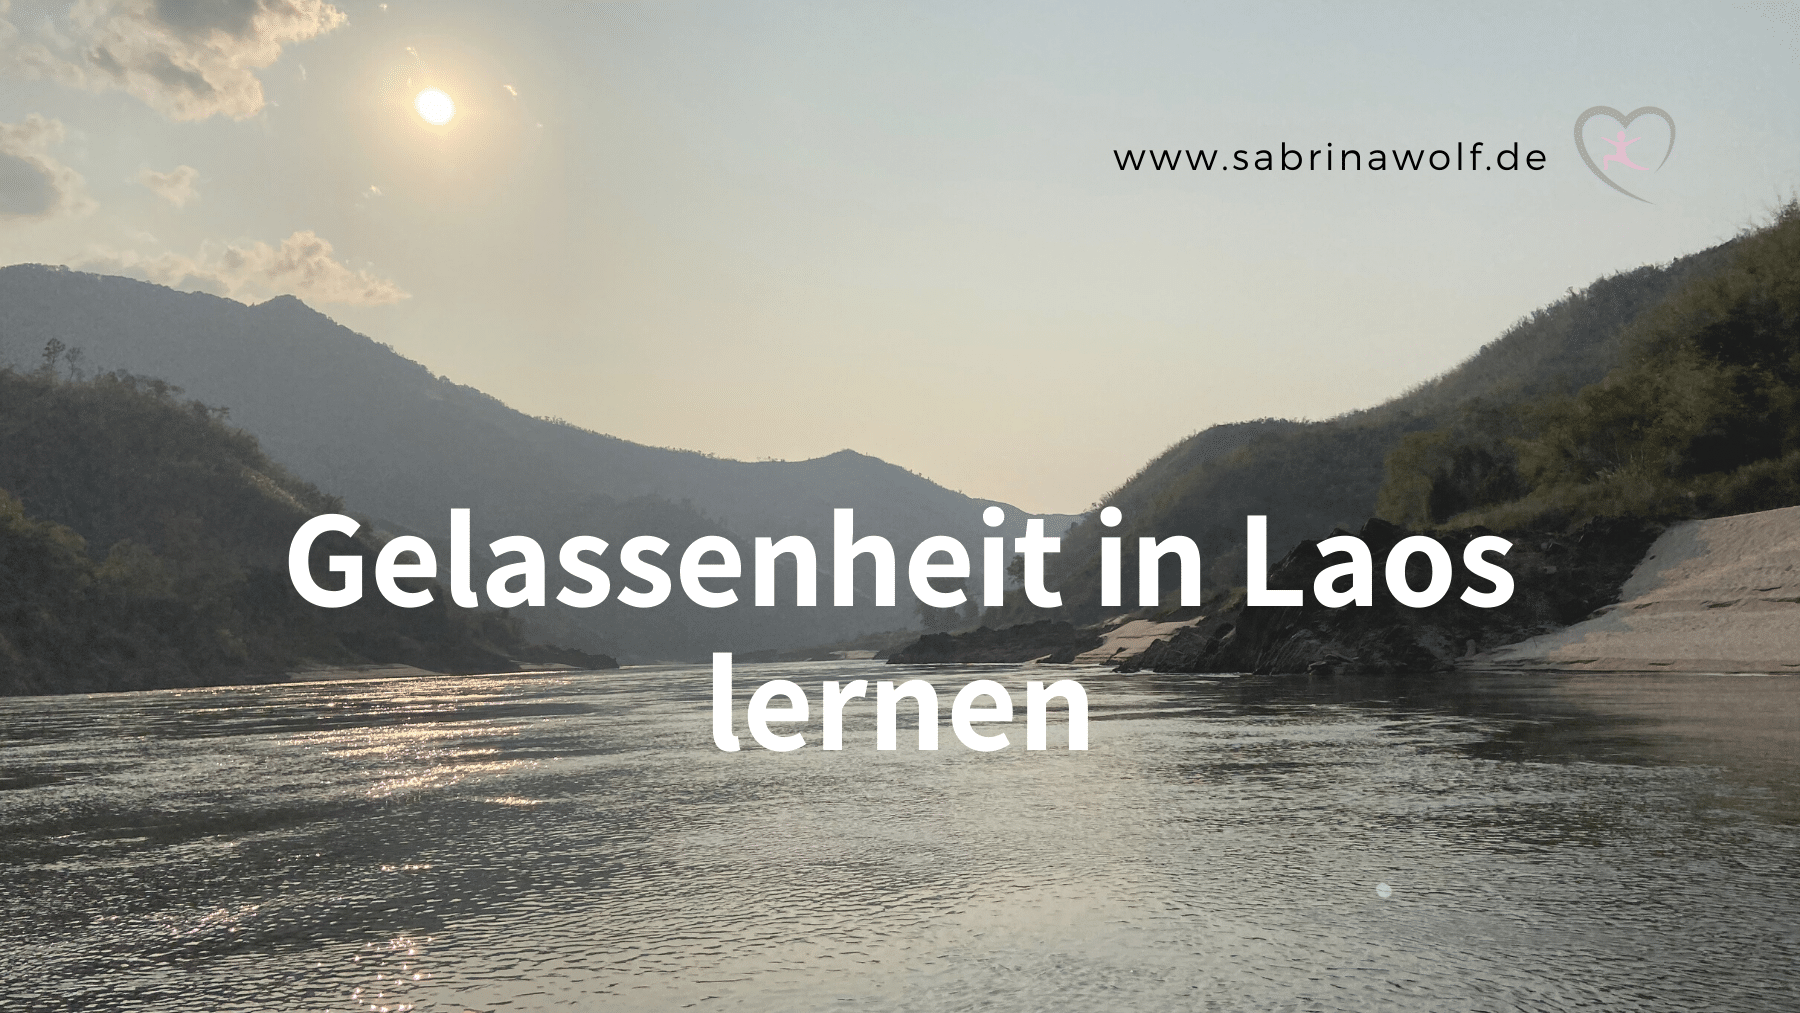 Laos Rundreise | Gelassenheit in Laos lernen